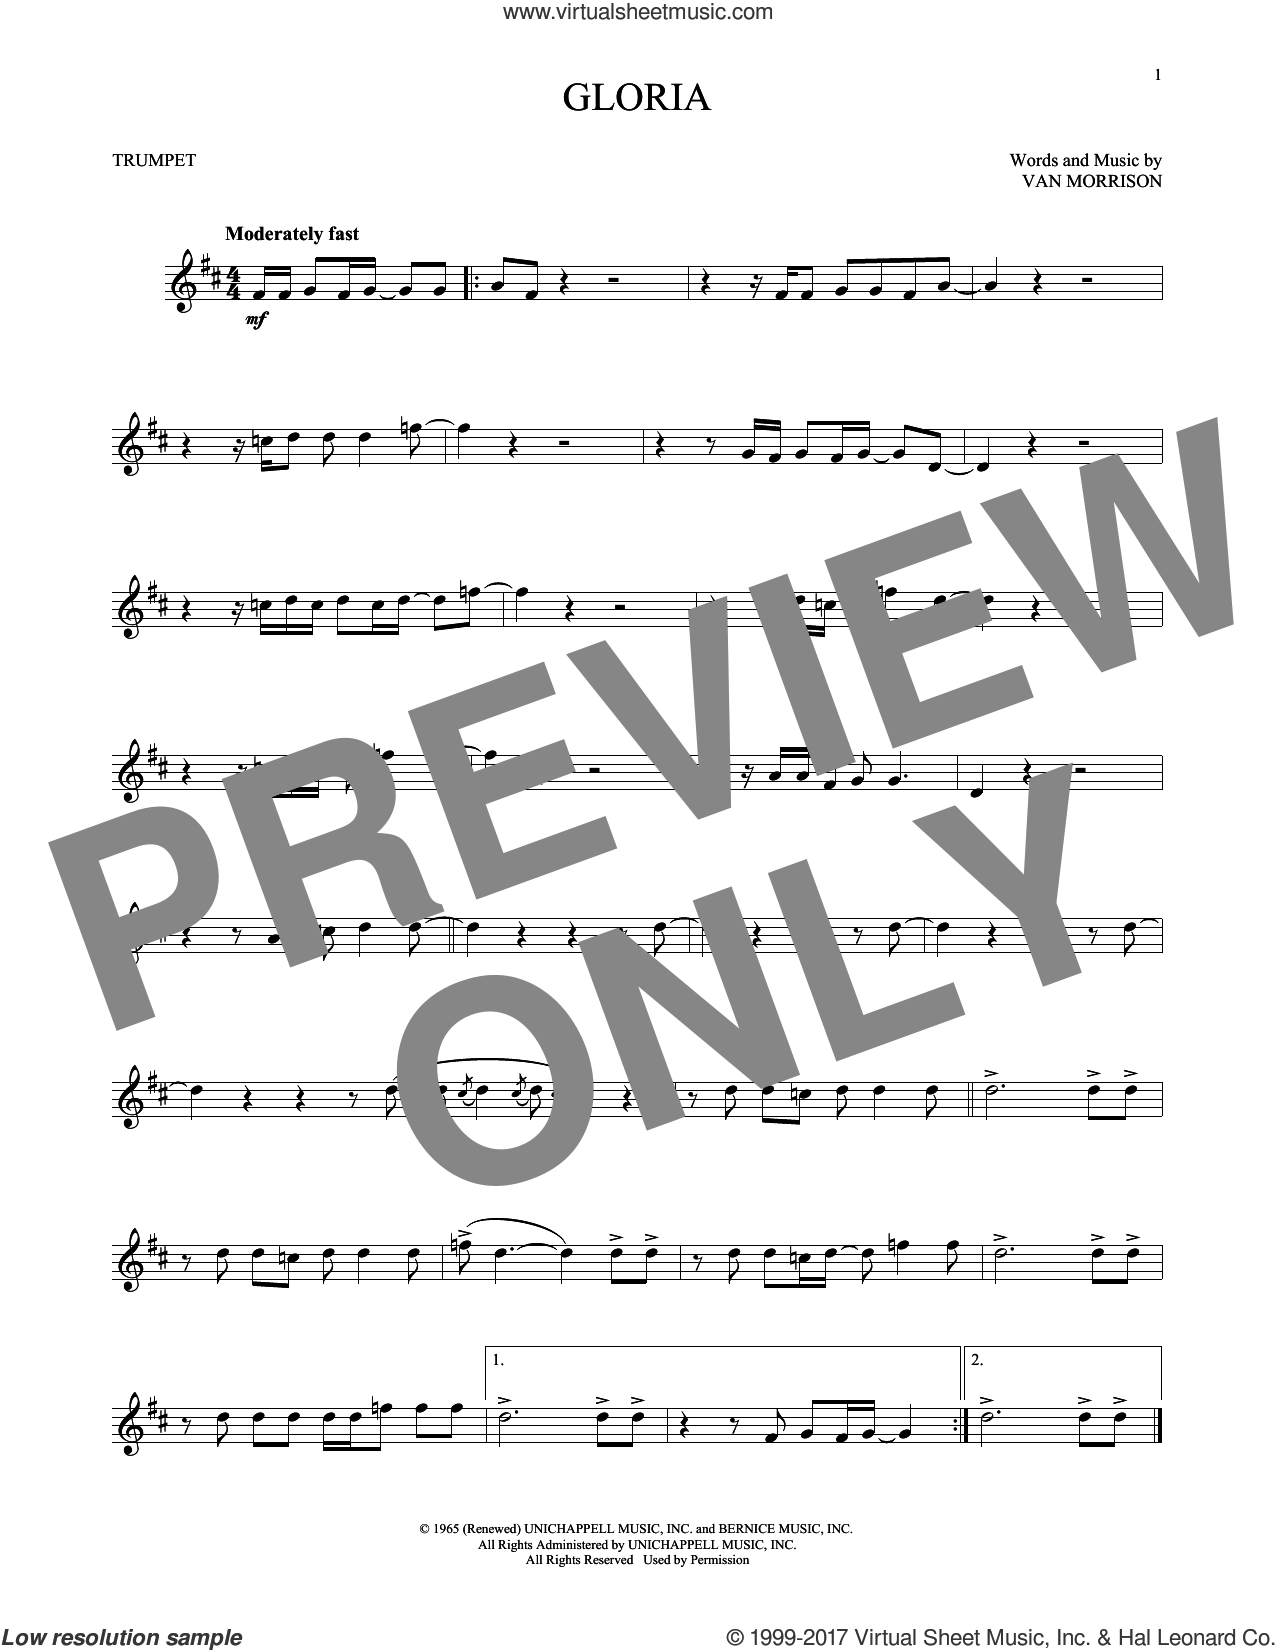 Gloria sheet music for trumpet solo by Van Morrison, intermediate skill level